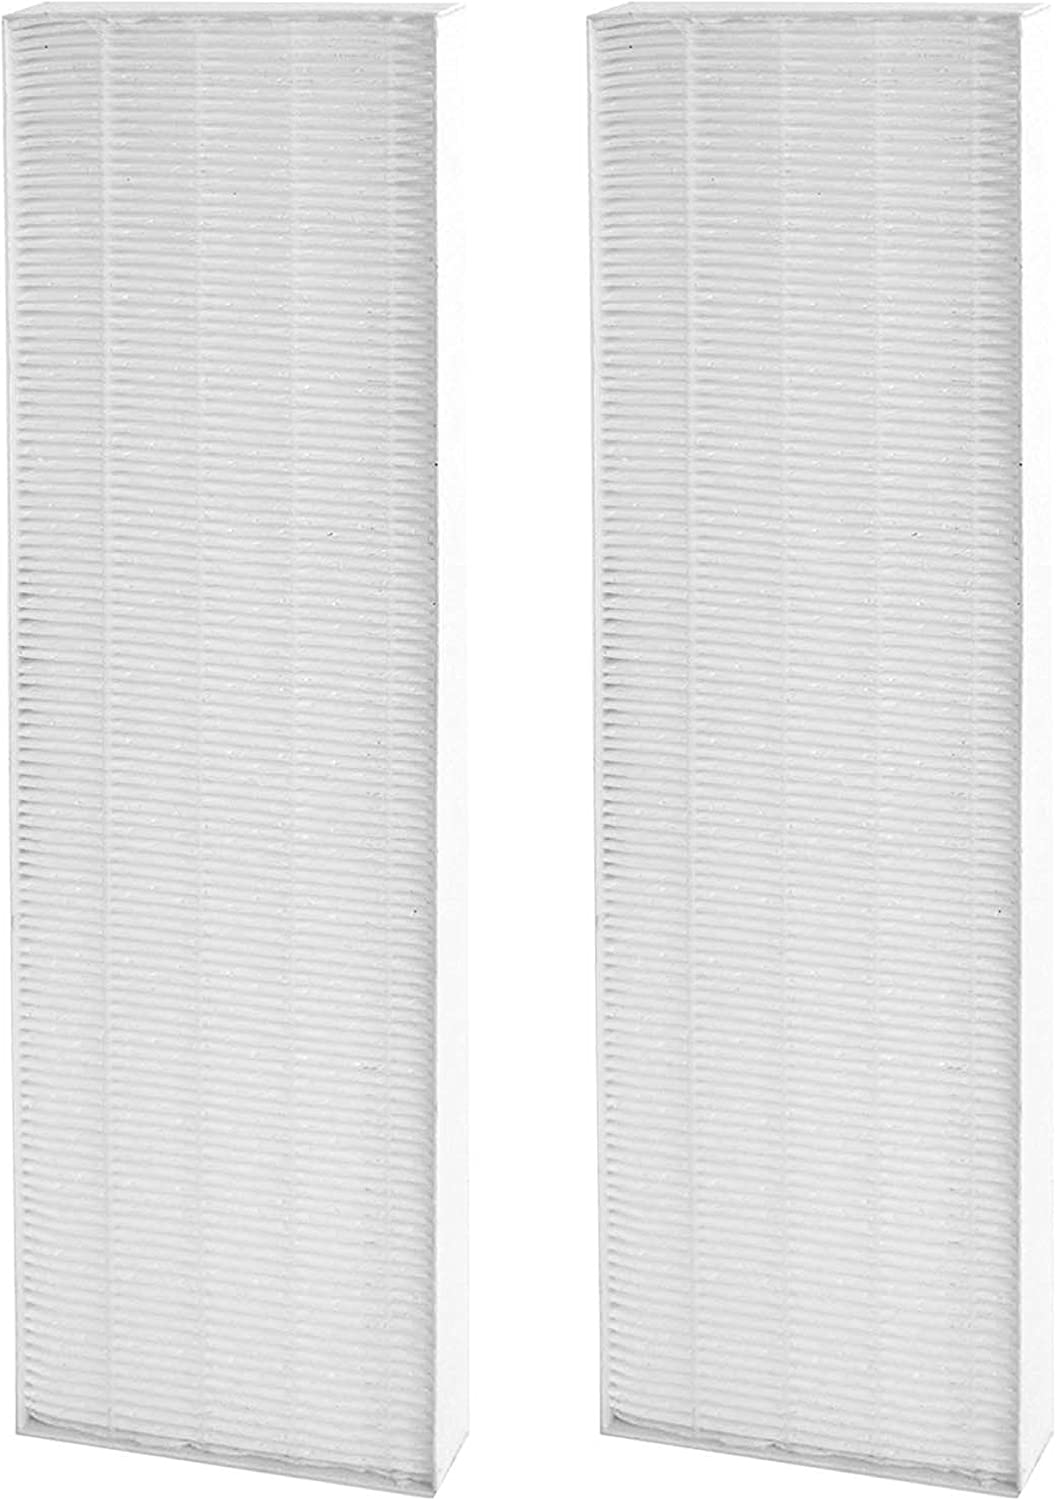 Nispira HEPA Filter Replacement Compatible with Fellowes AeraMax 90/100/DX5 DB5 Air Purifier. Compared to Part 40101701 9287001 9324001, 2 Filters